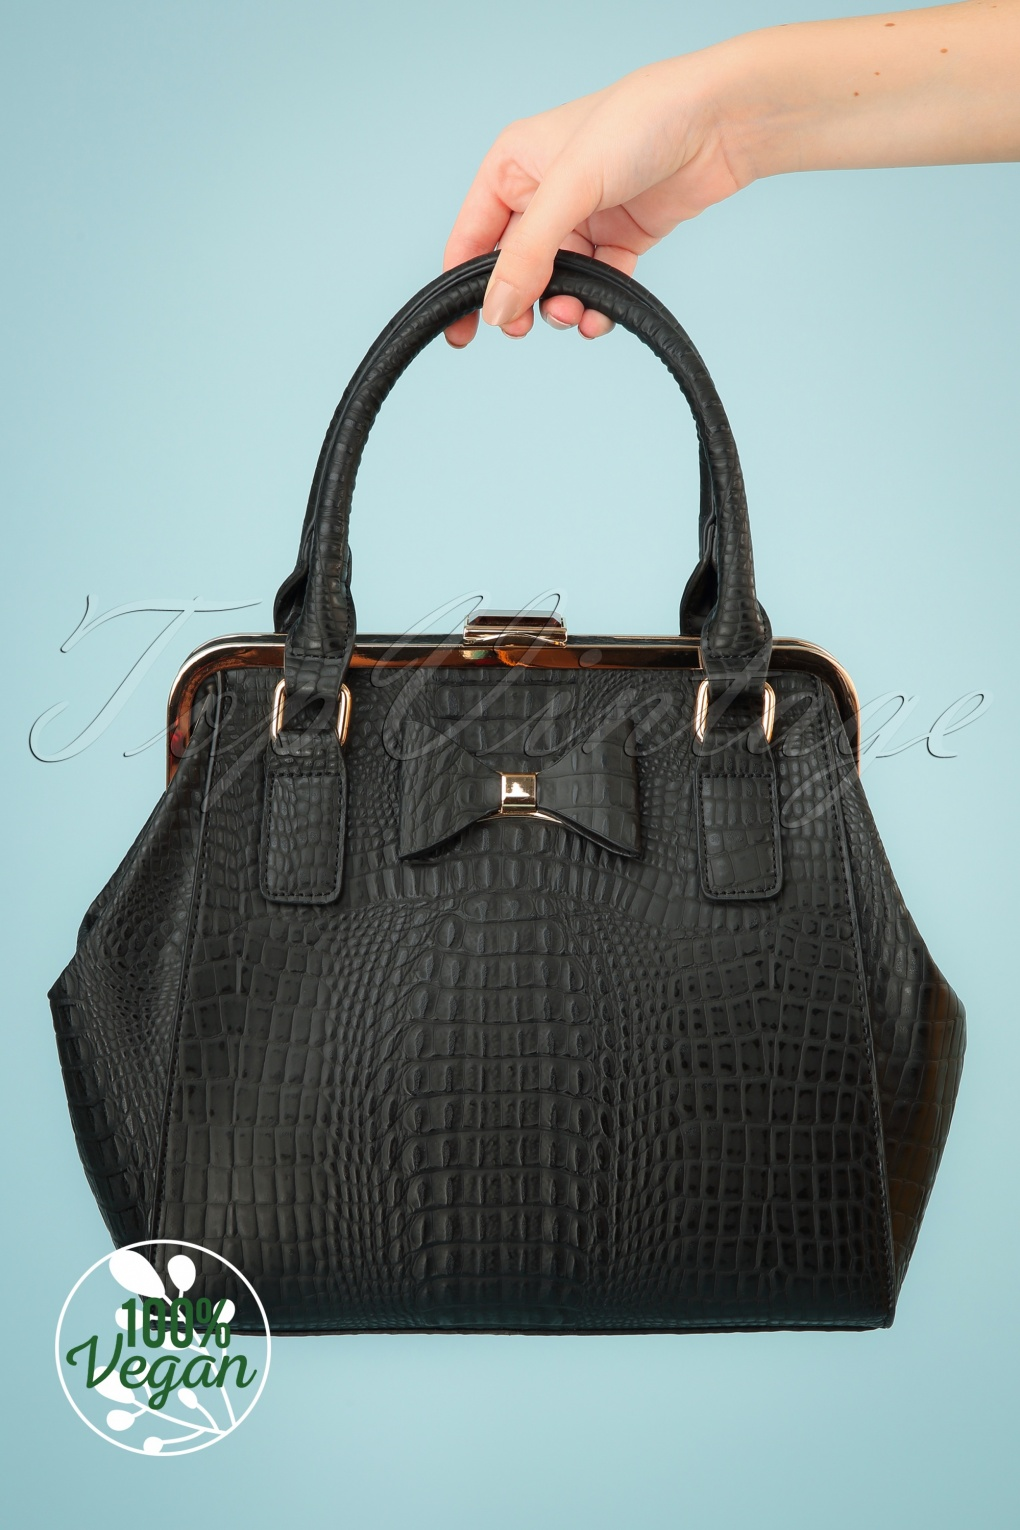 Vintage & Retro Handbags, Purses, Wallets, Bags 40s Molly Bag in Black �70.61 AT vintagedancer.com